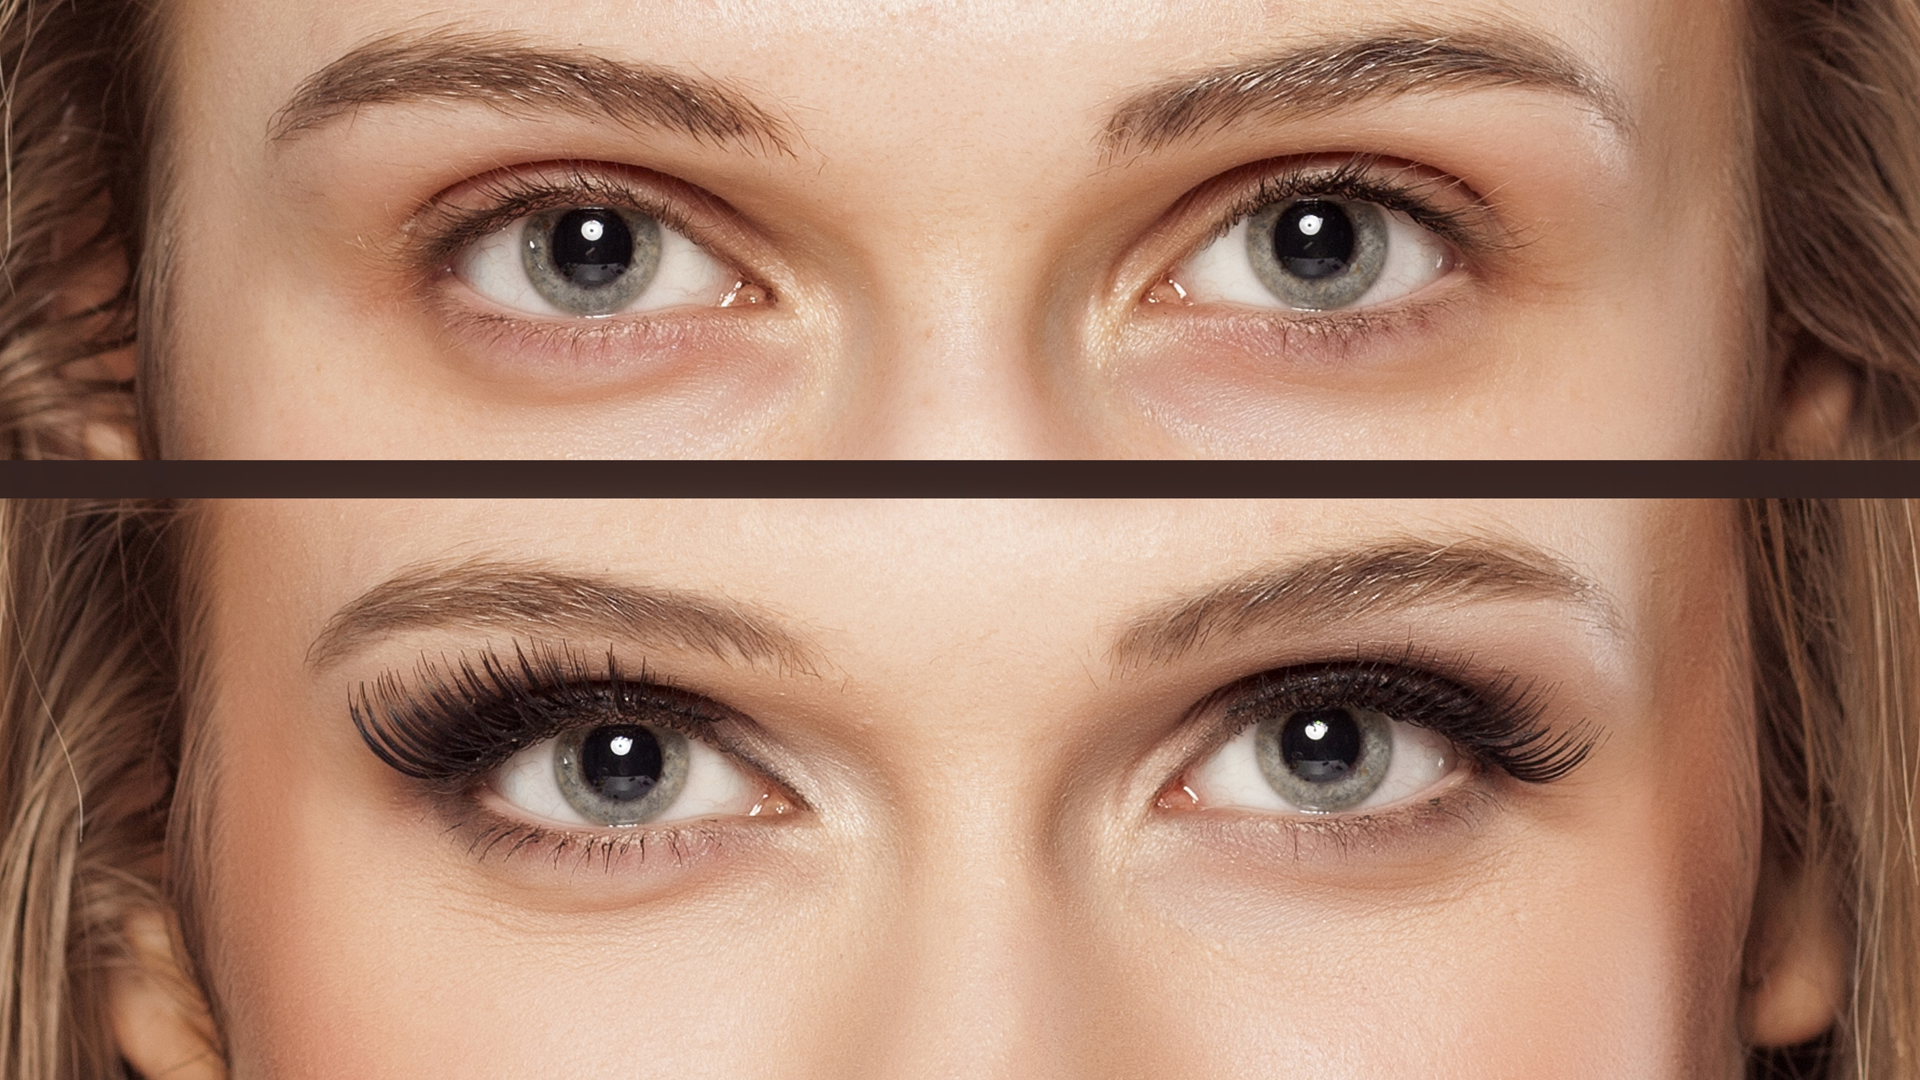 Comparación de una mirada con pestañas naturales vs. extensiones de pestañas (Getty Images)